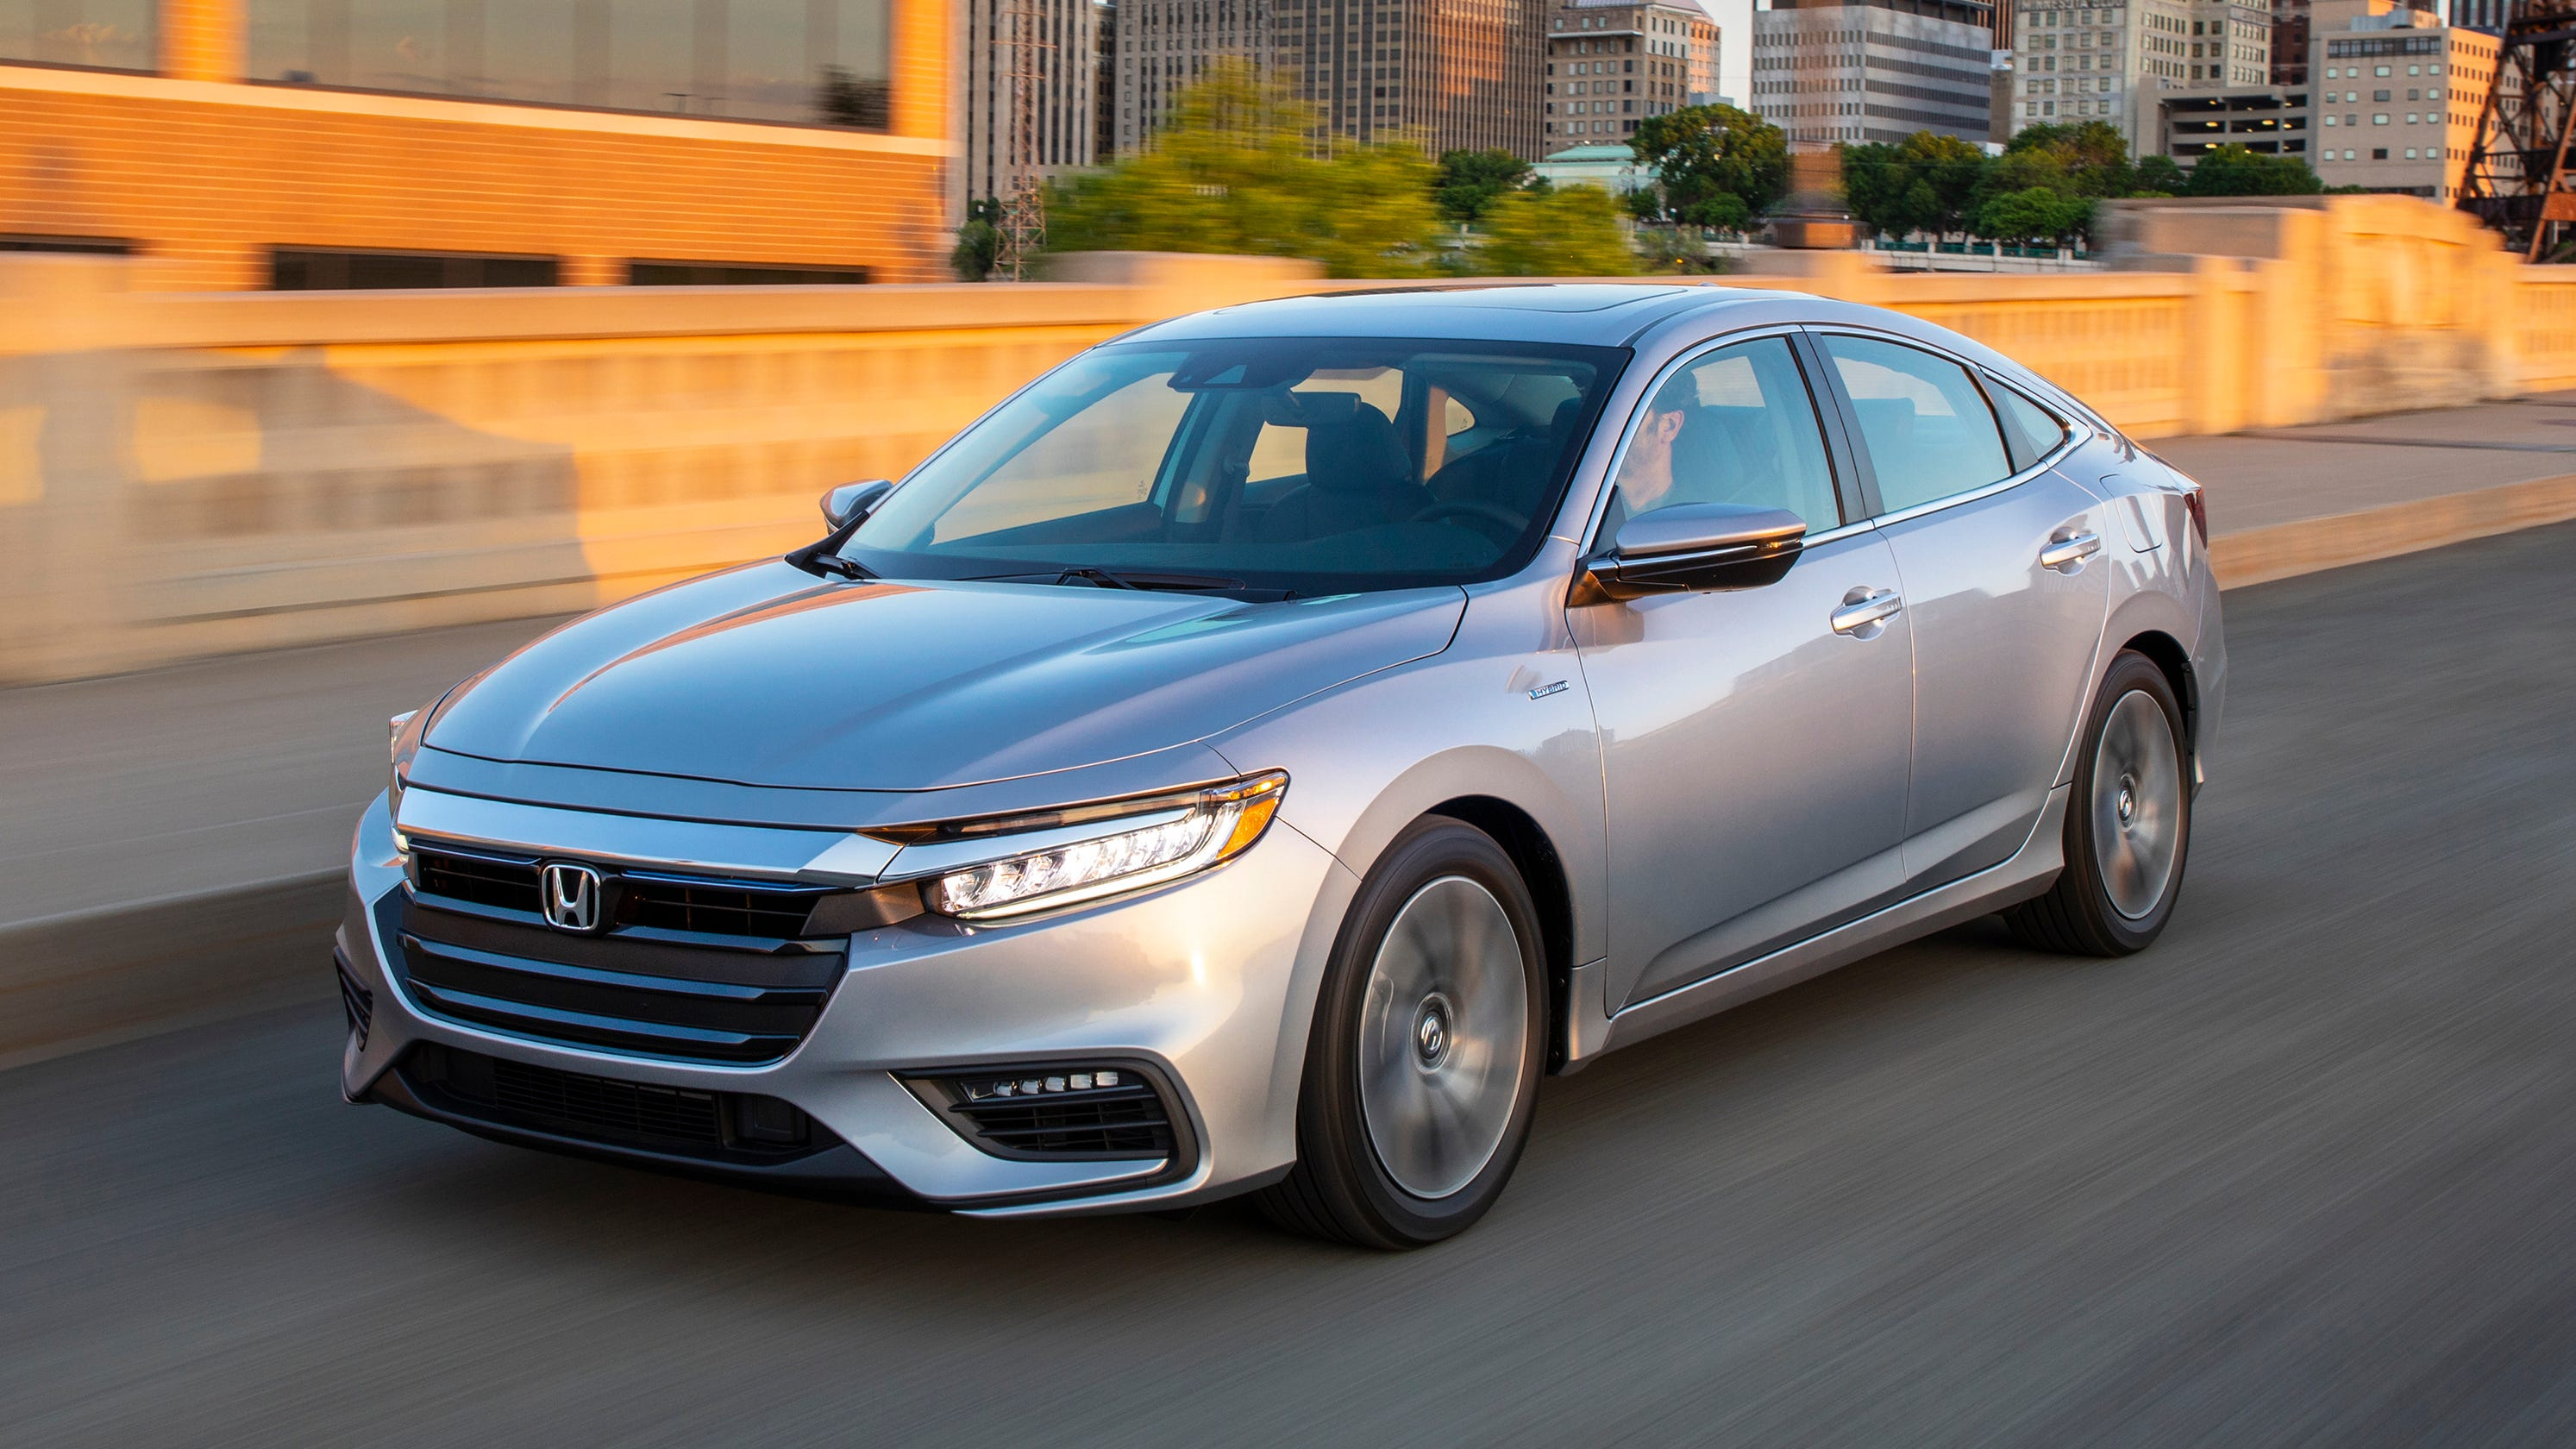 This Honda Hybrid Honored As Green Car Of The Year